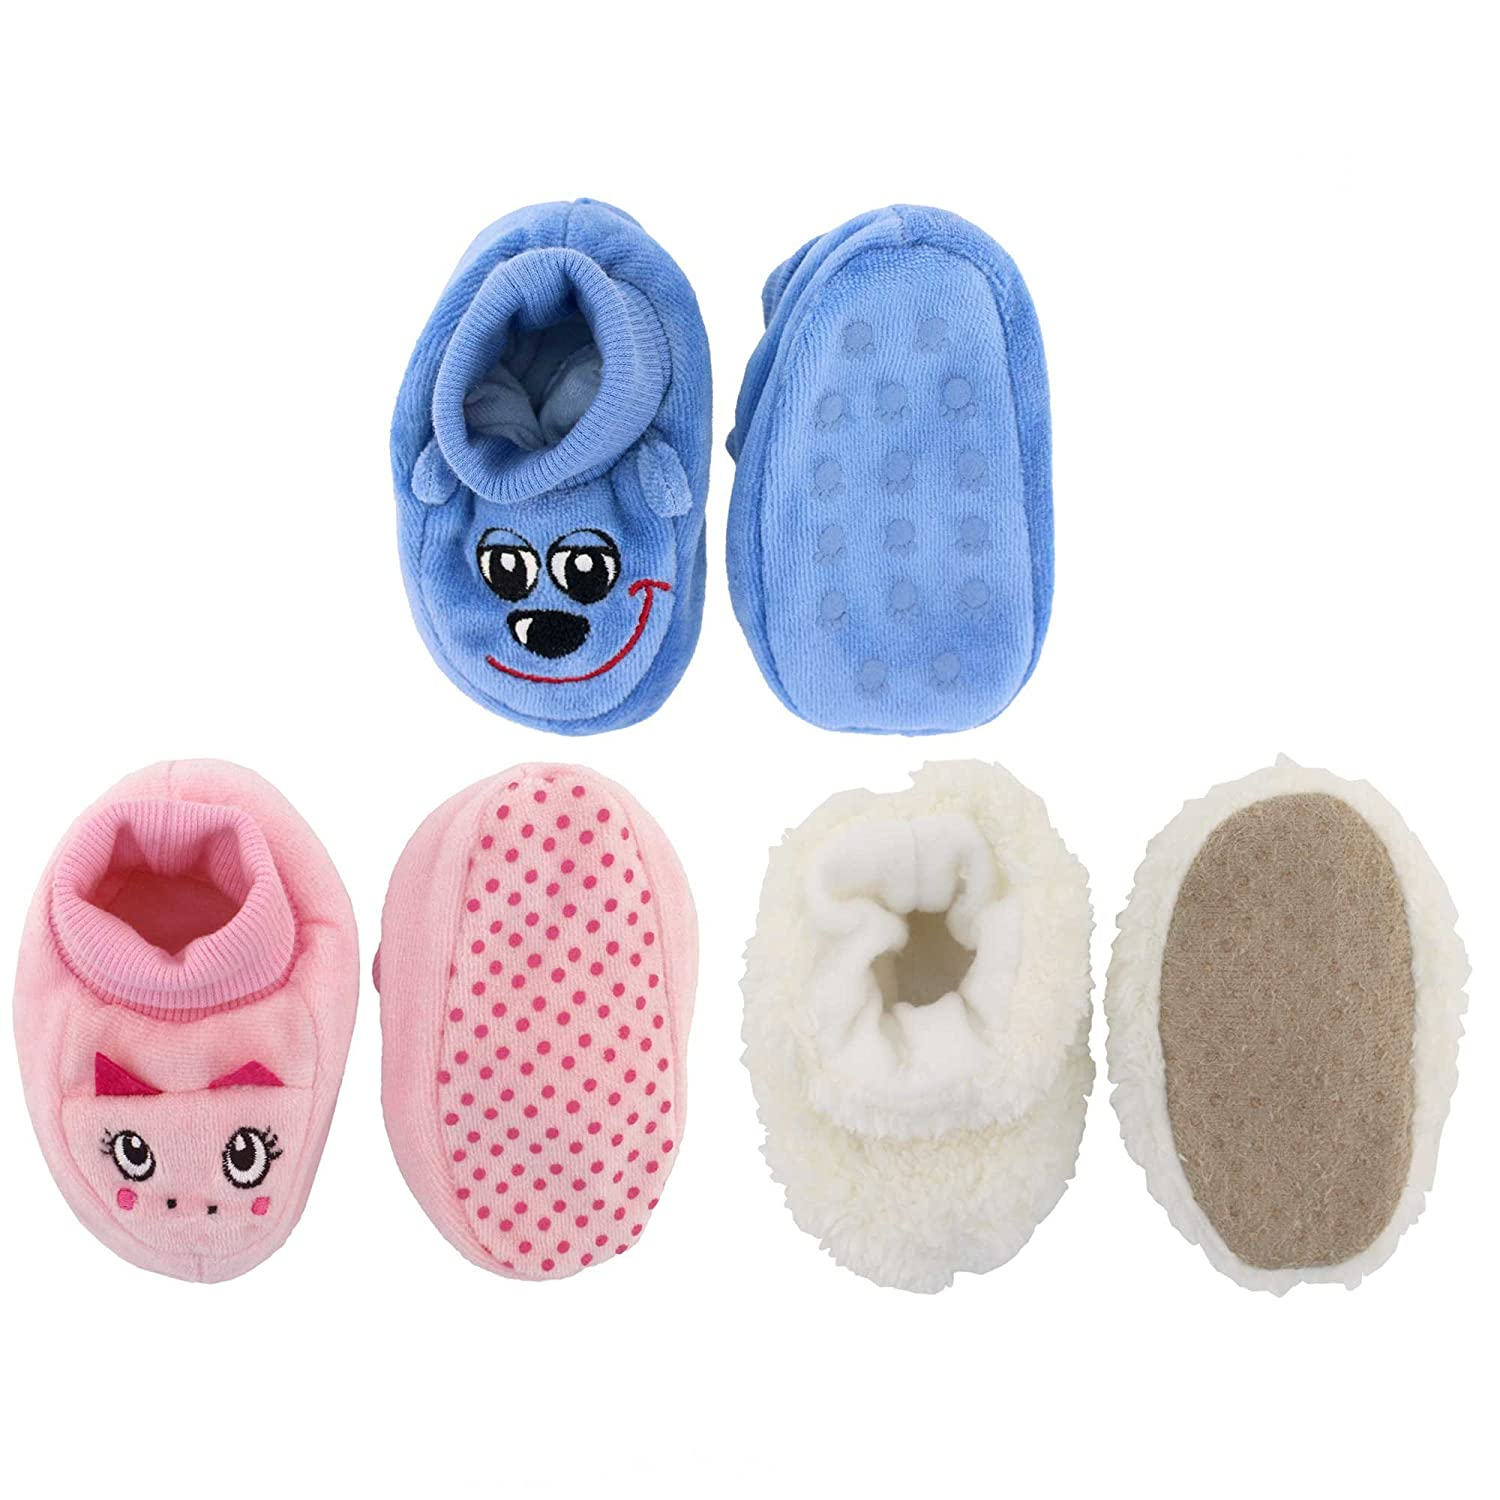 53cce74b2 Amazon.com: Infants Toddler Soft Warm Plush Cozy Fuzzy Cartoon Animal  Slippers Booties Socks/Shoes - A05: Clothing